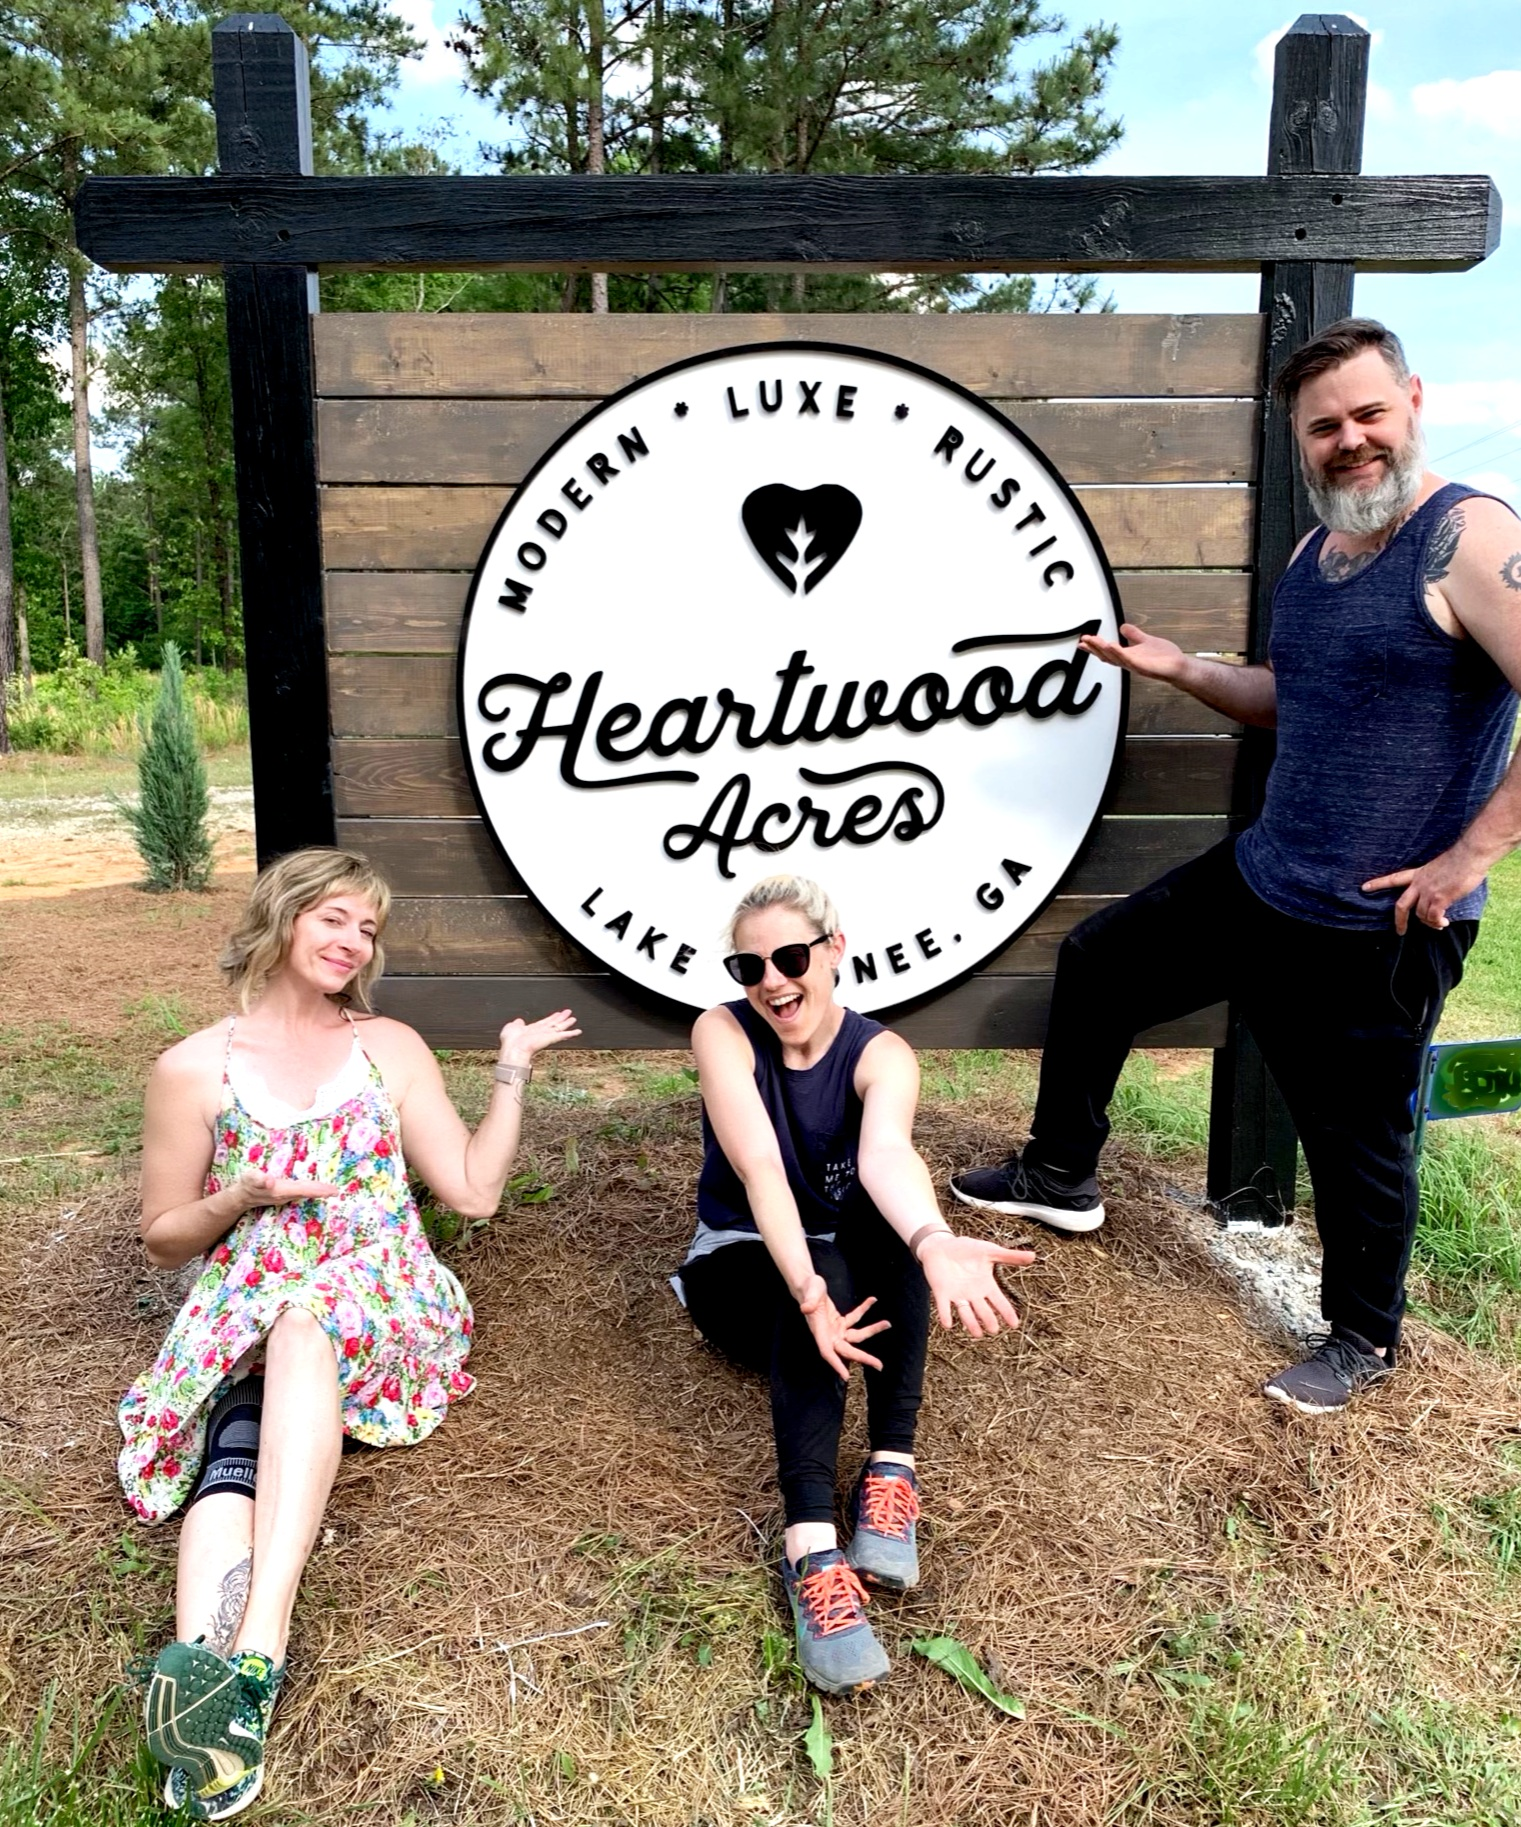 We are Cregg, Lauren, and Micah, aka Heartwood Group.